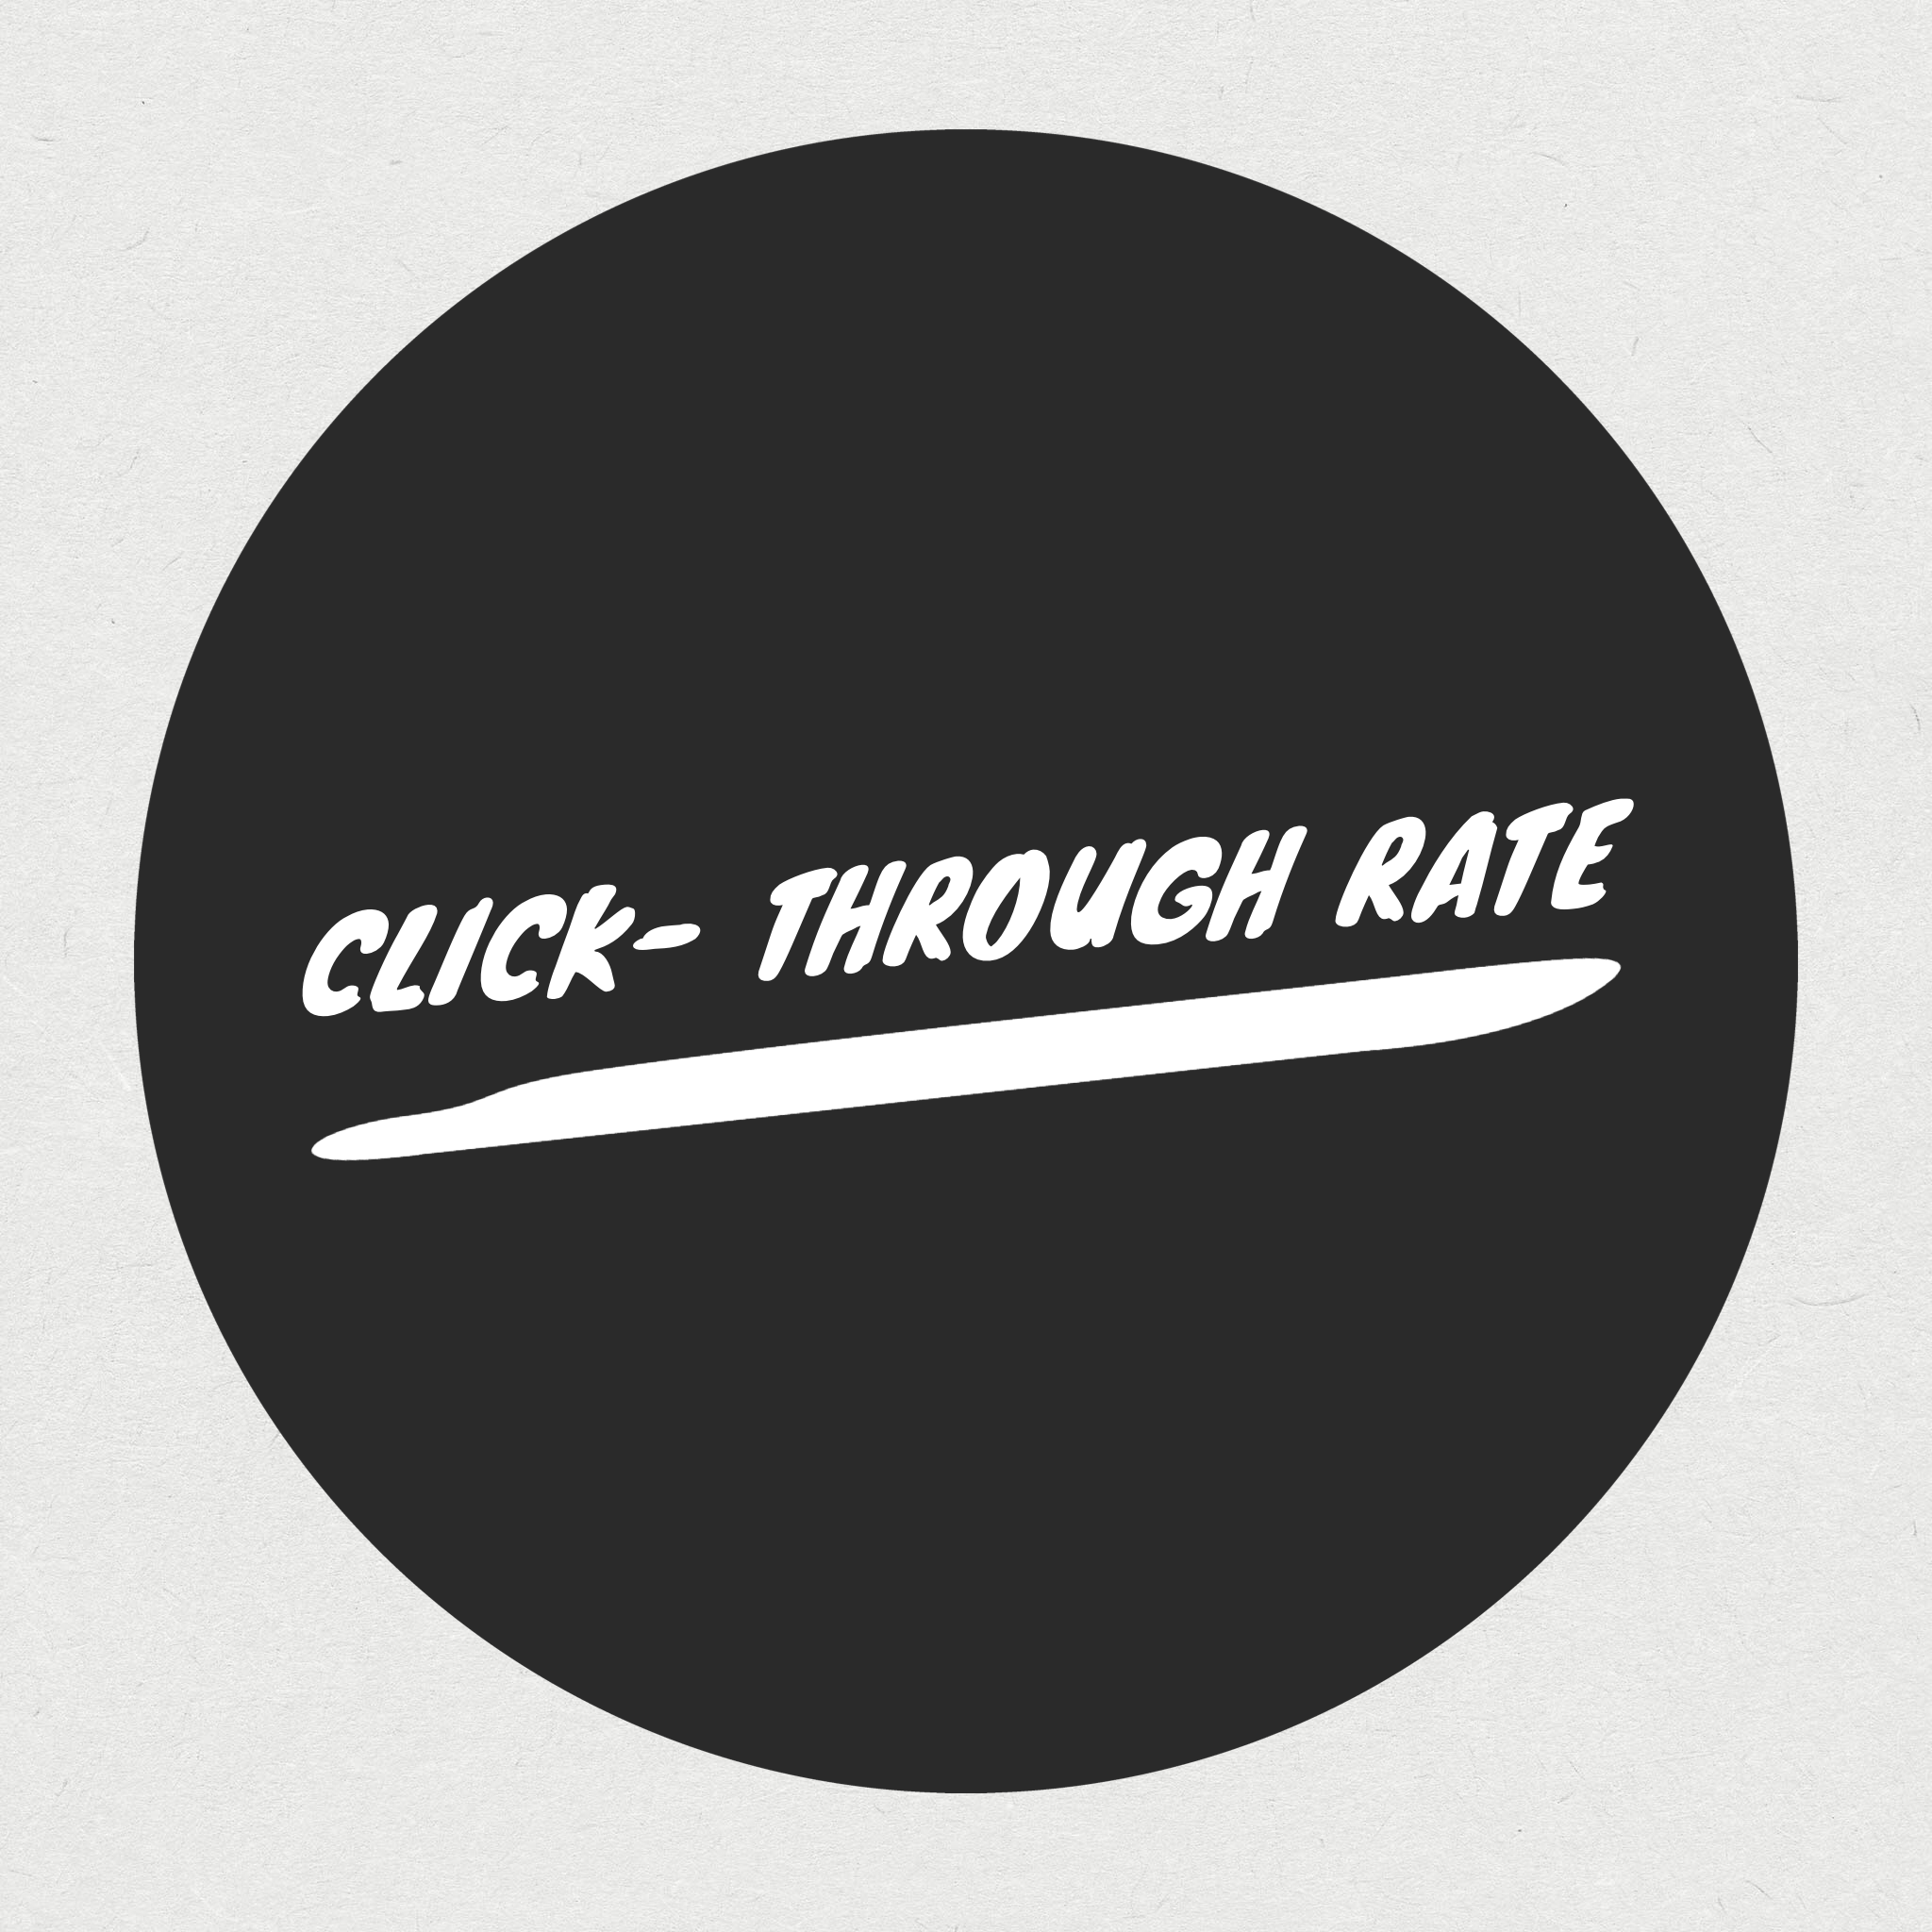 click-through rate